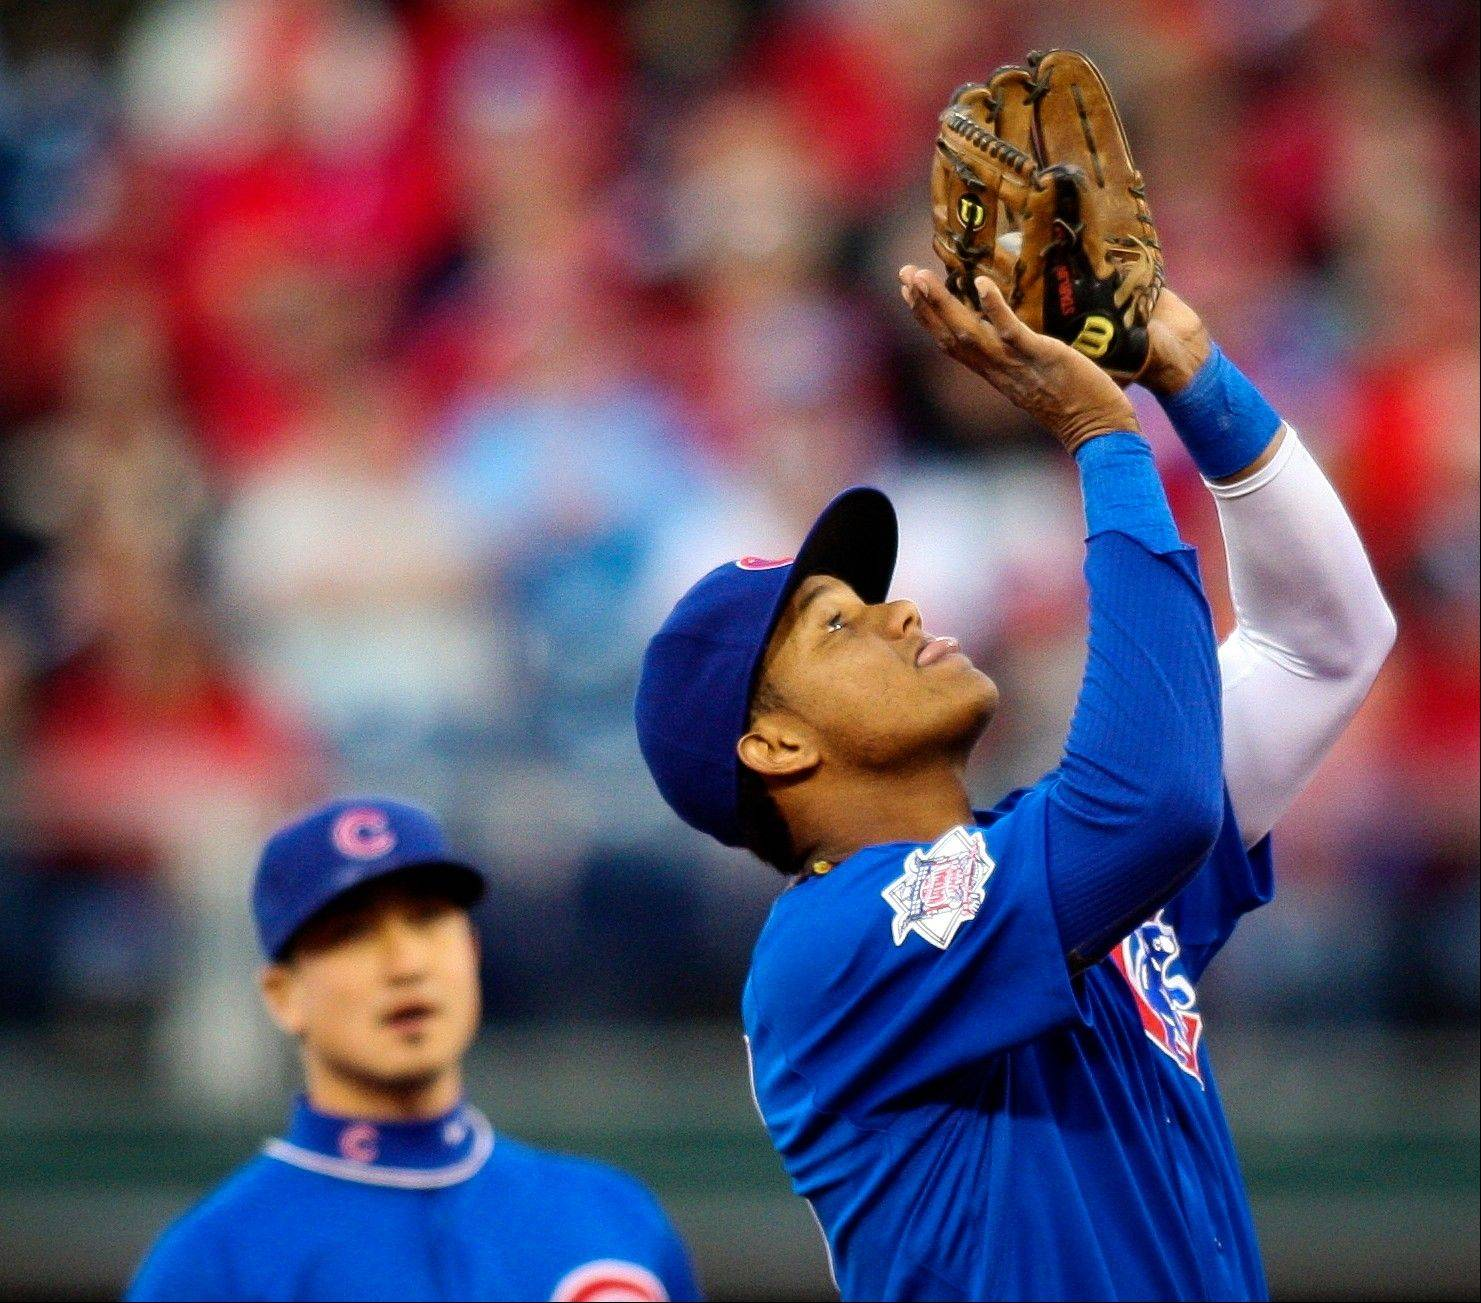 Would Cubs game be more interesting to watch this season if one camera followed every movement and breath of shortstop Starlin Castro? Matt Spiegel thinks so. Watching to see the growth in Castro's development is one of the few intriguing aspects to what could be a 95-loss season, Spiegel says.